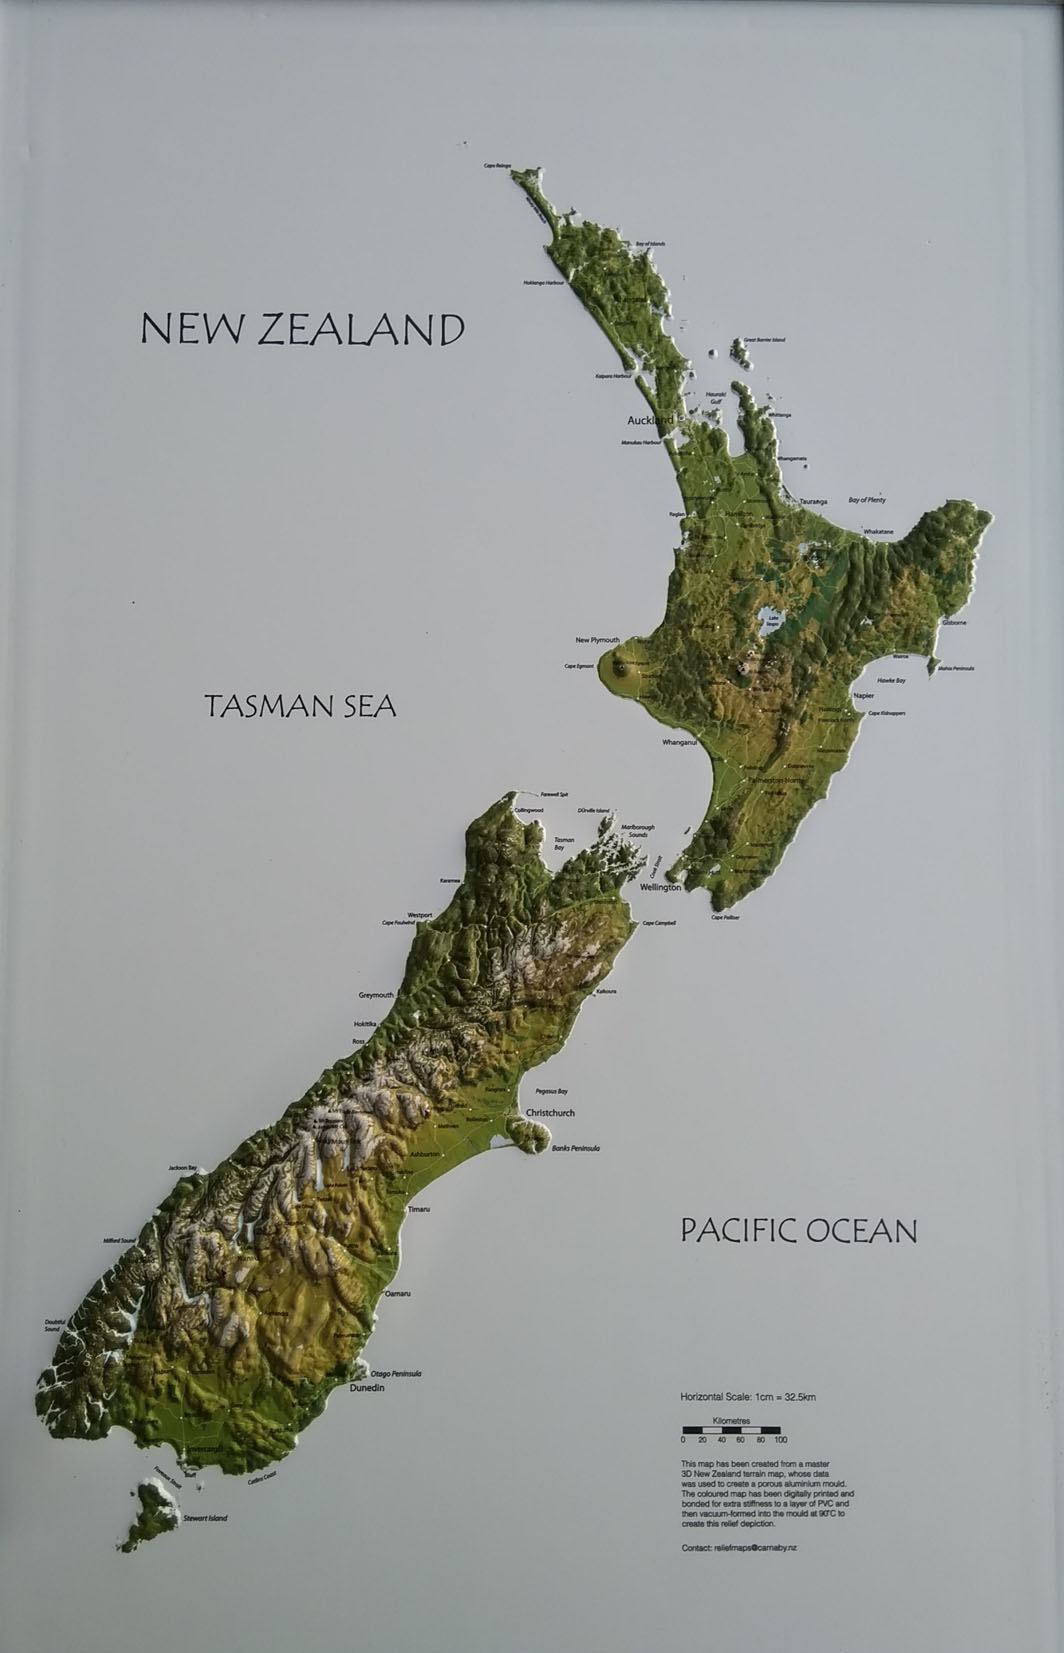 Where Is Christchurch New Zealand On The Map.New Zealand Wall Maps Including North And South Island Maps